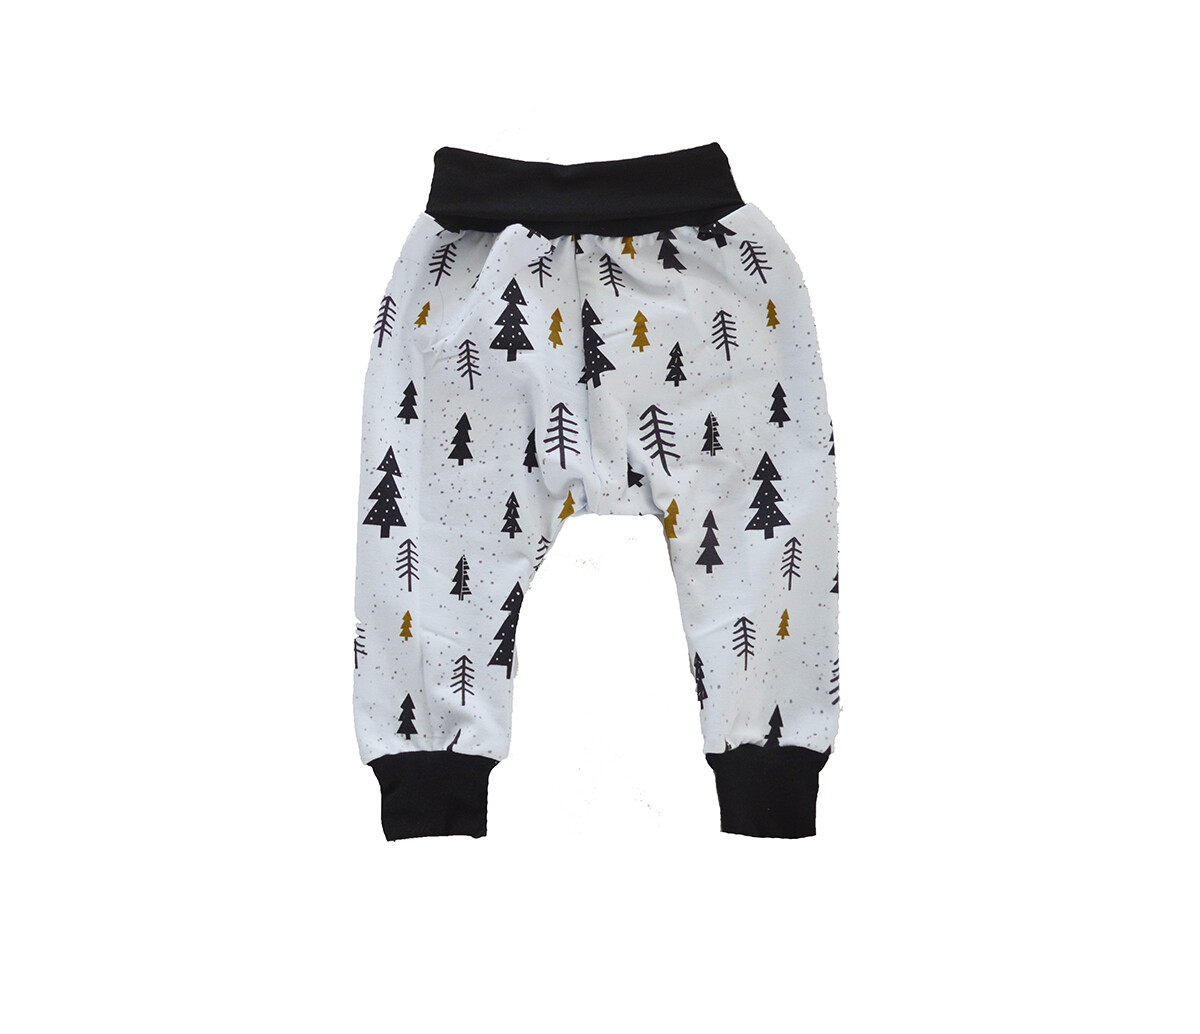 Little Sprout™ One-Size Grow with Me Harem Pants - Lightweight Summer Bottoms - Alpines